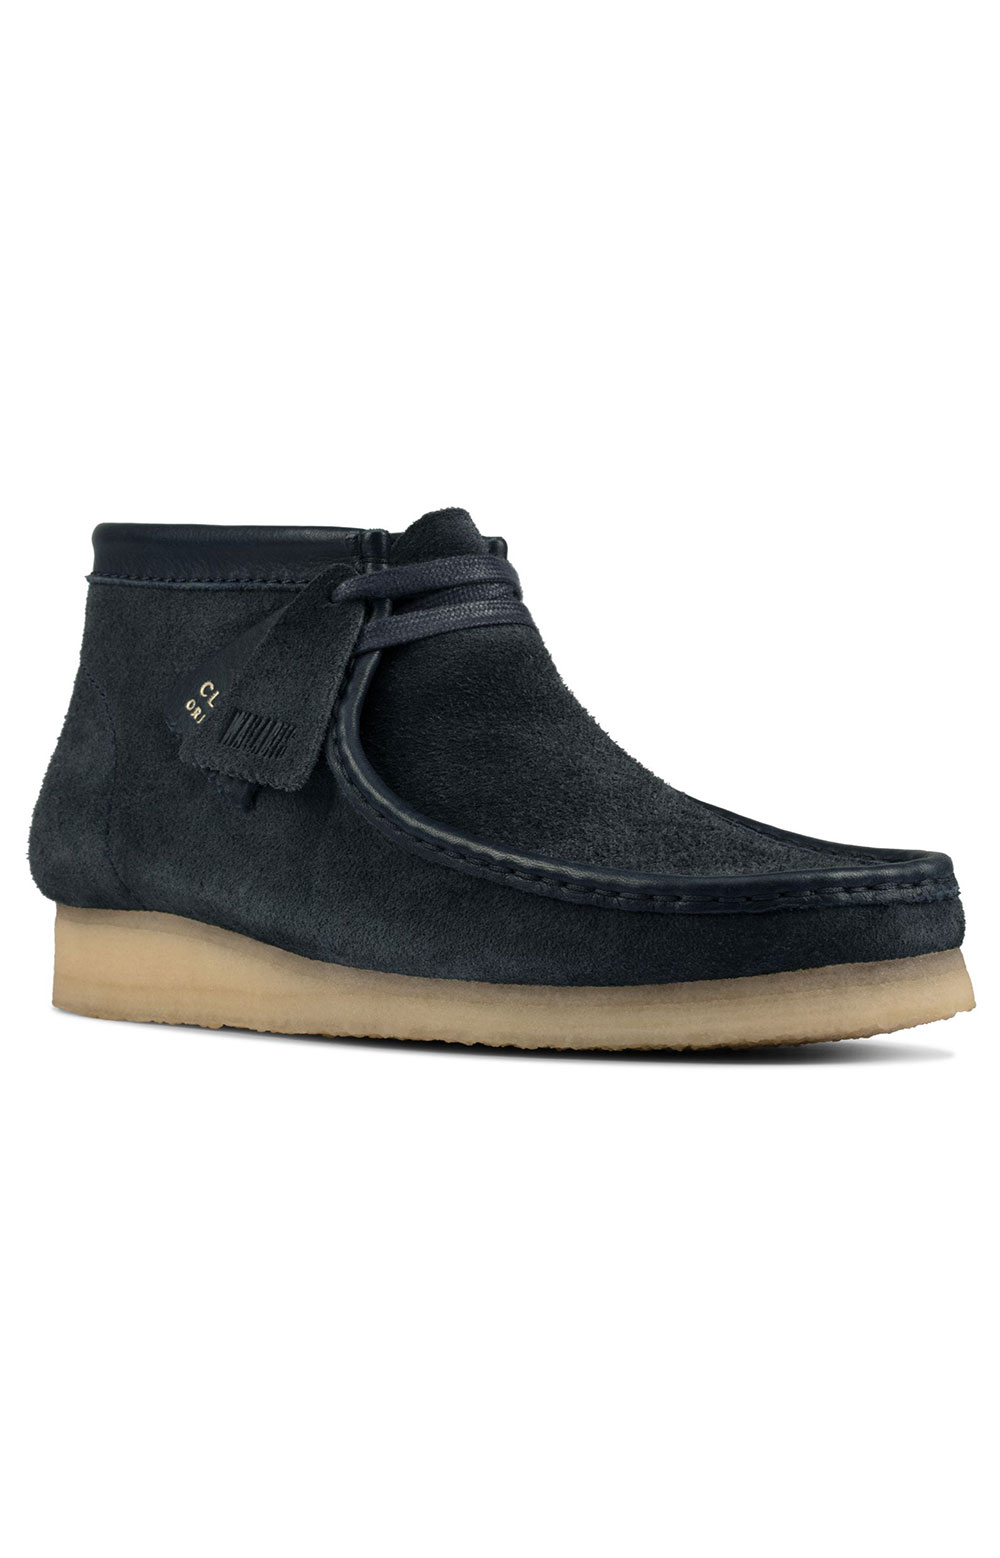 (26155048) Wallabee Boots - Navy Hairy Suede  2